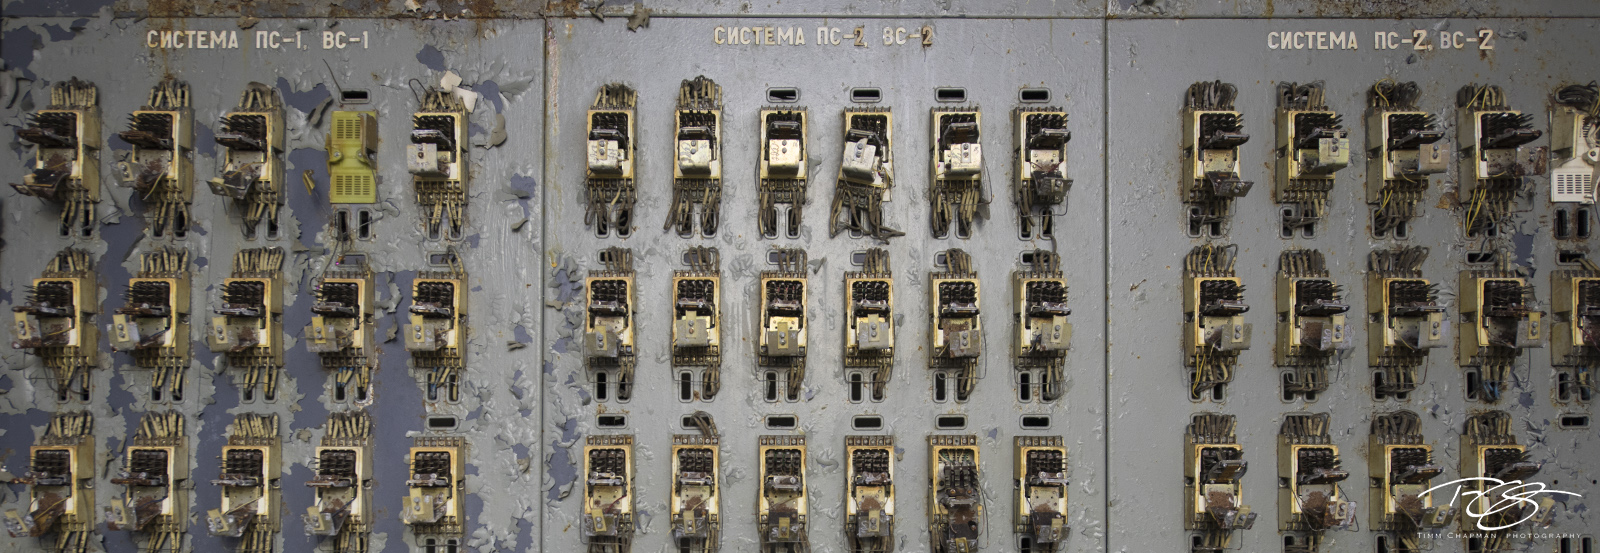 chernobyl, chornobyl, panorama, exclusion zone, abandoned, forgotten, wasteland, radioactive, decay, peeling paint, duga, radar, russian woodpecker, control panel, connection panel, wires, control boa, photo